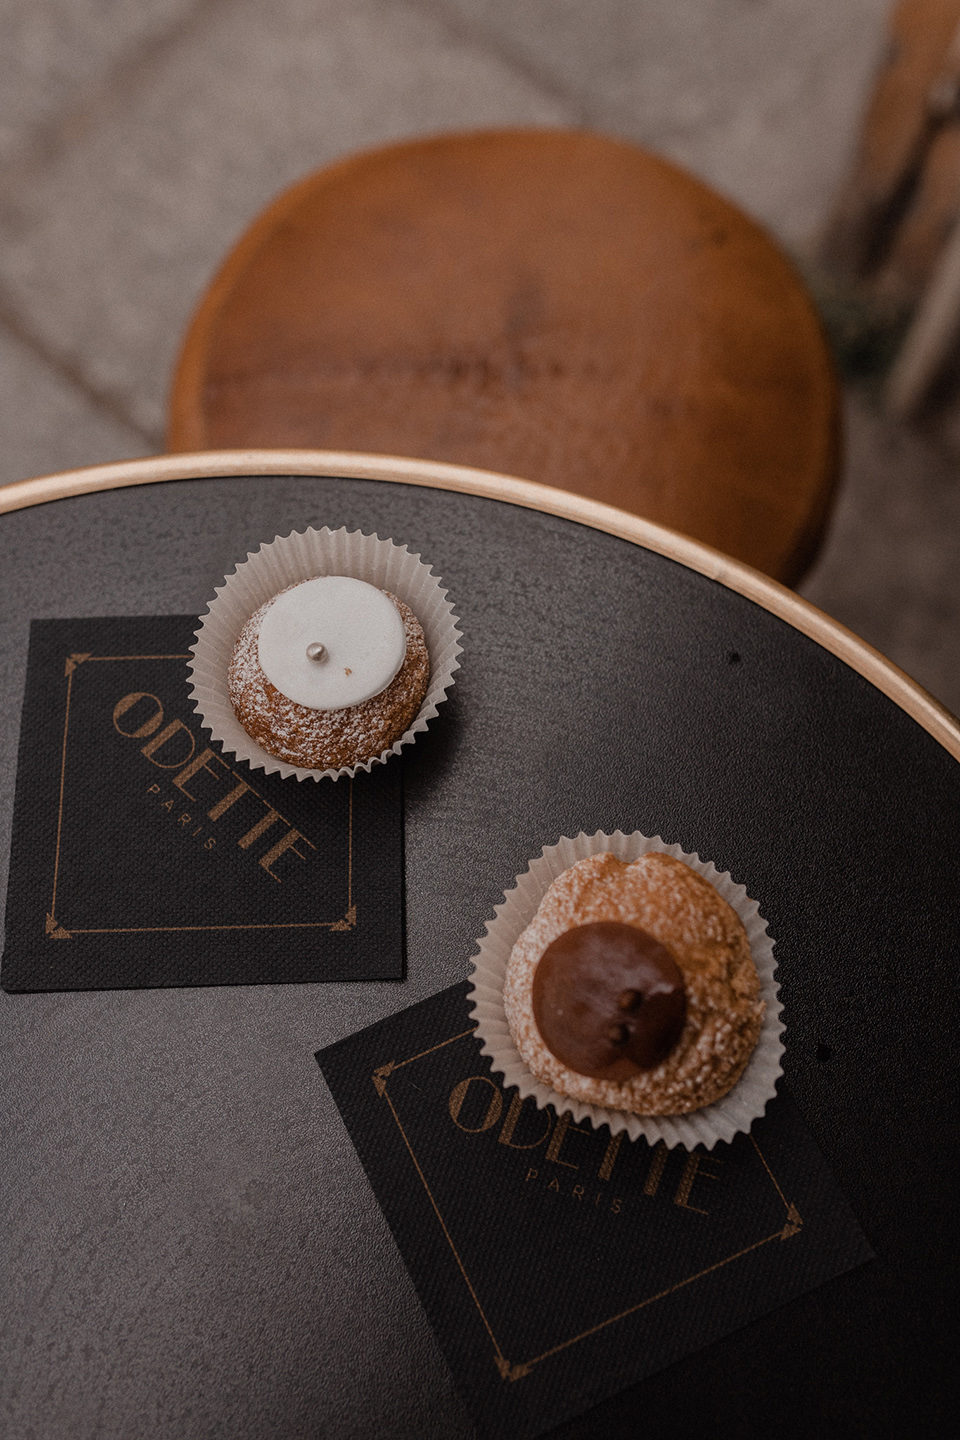 Chocolate and vanille cream puffs from Odette Paris